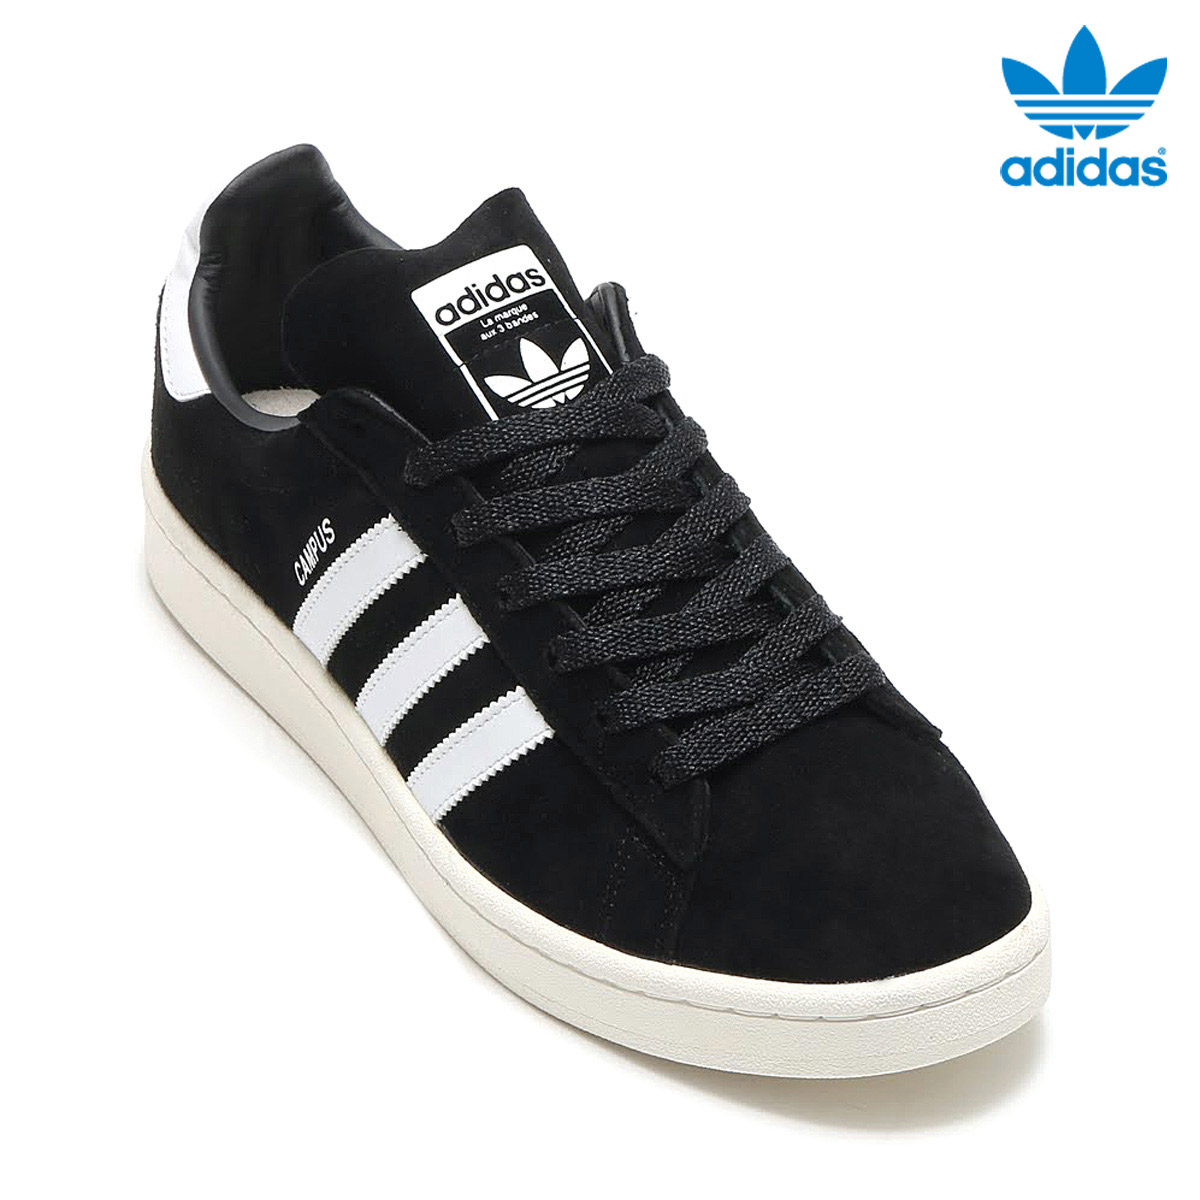 adidas Originals CAMPUS (Adidas original scan pass) (Core BlackRunning WhiteChalk White)